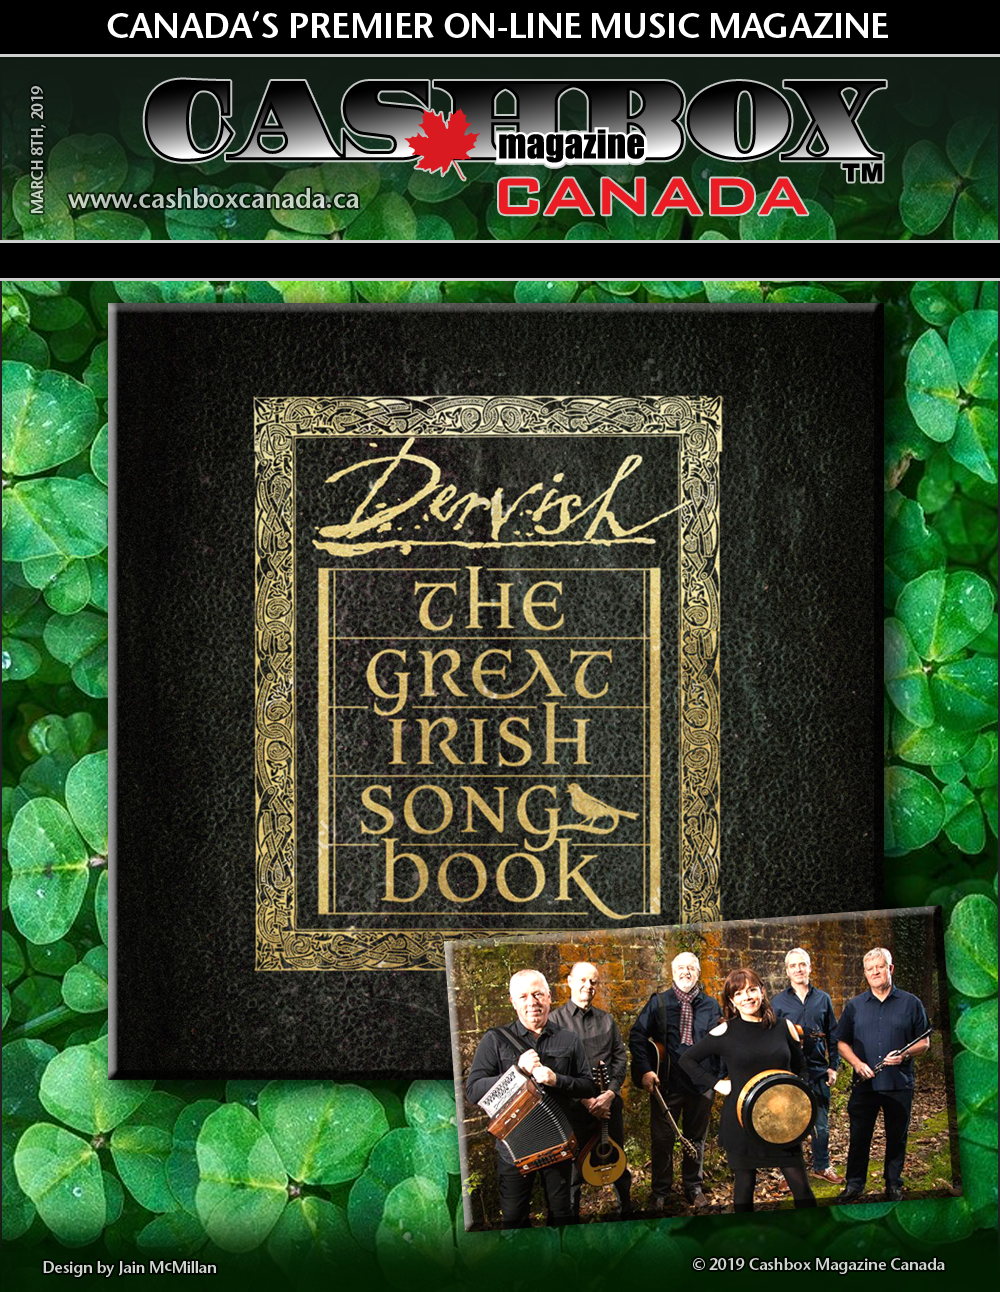 Dervish The Great Irish Songbook